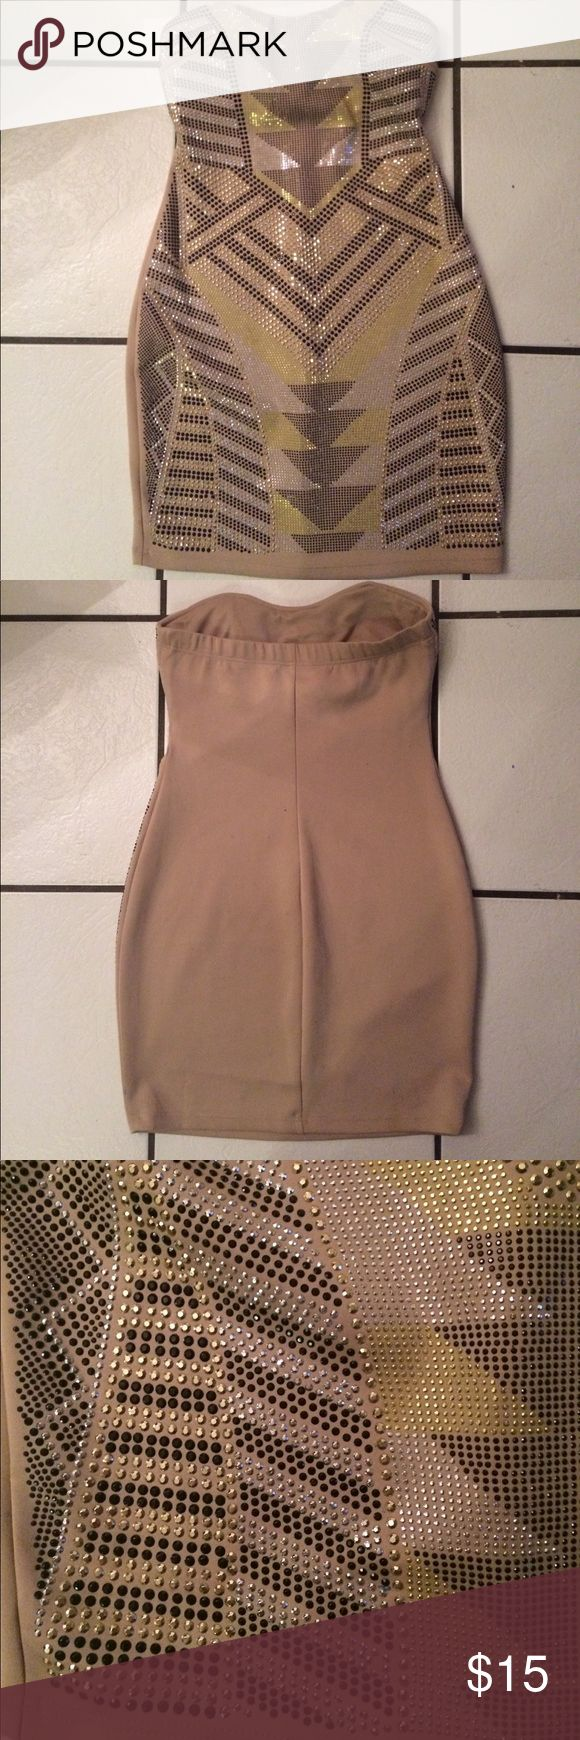 Staples dress Super cute and jaw dropping dress from wet seal Fashion Nova Dresses Strapless